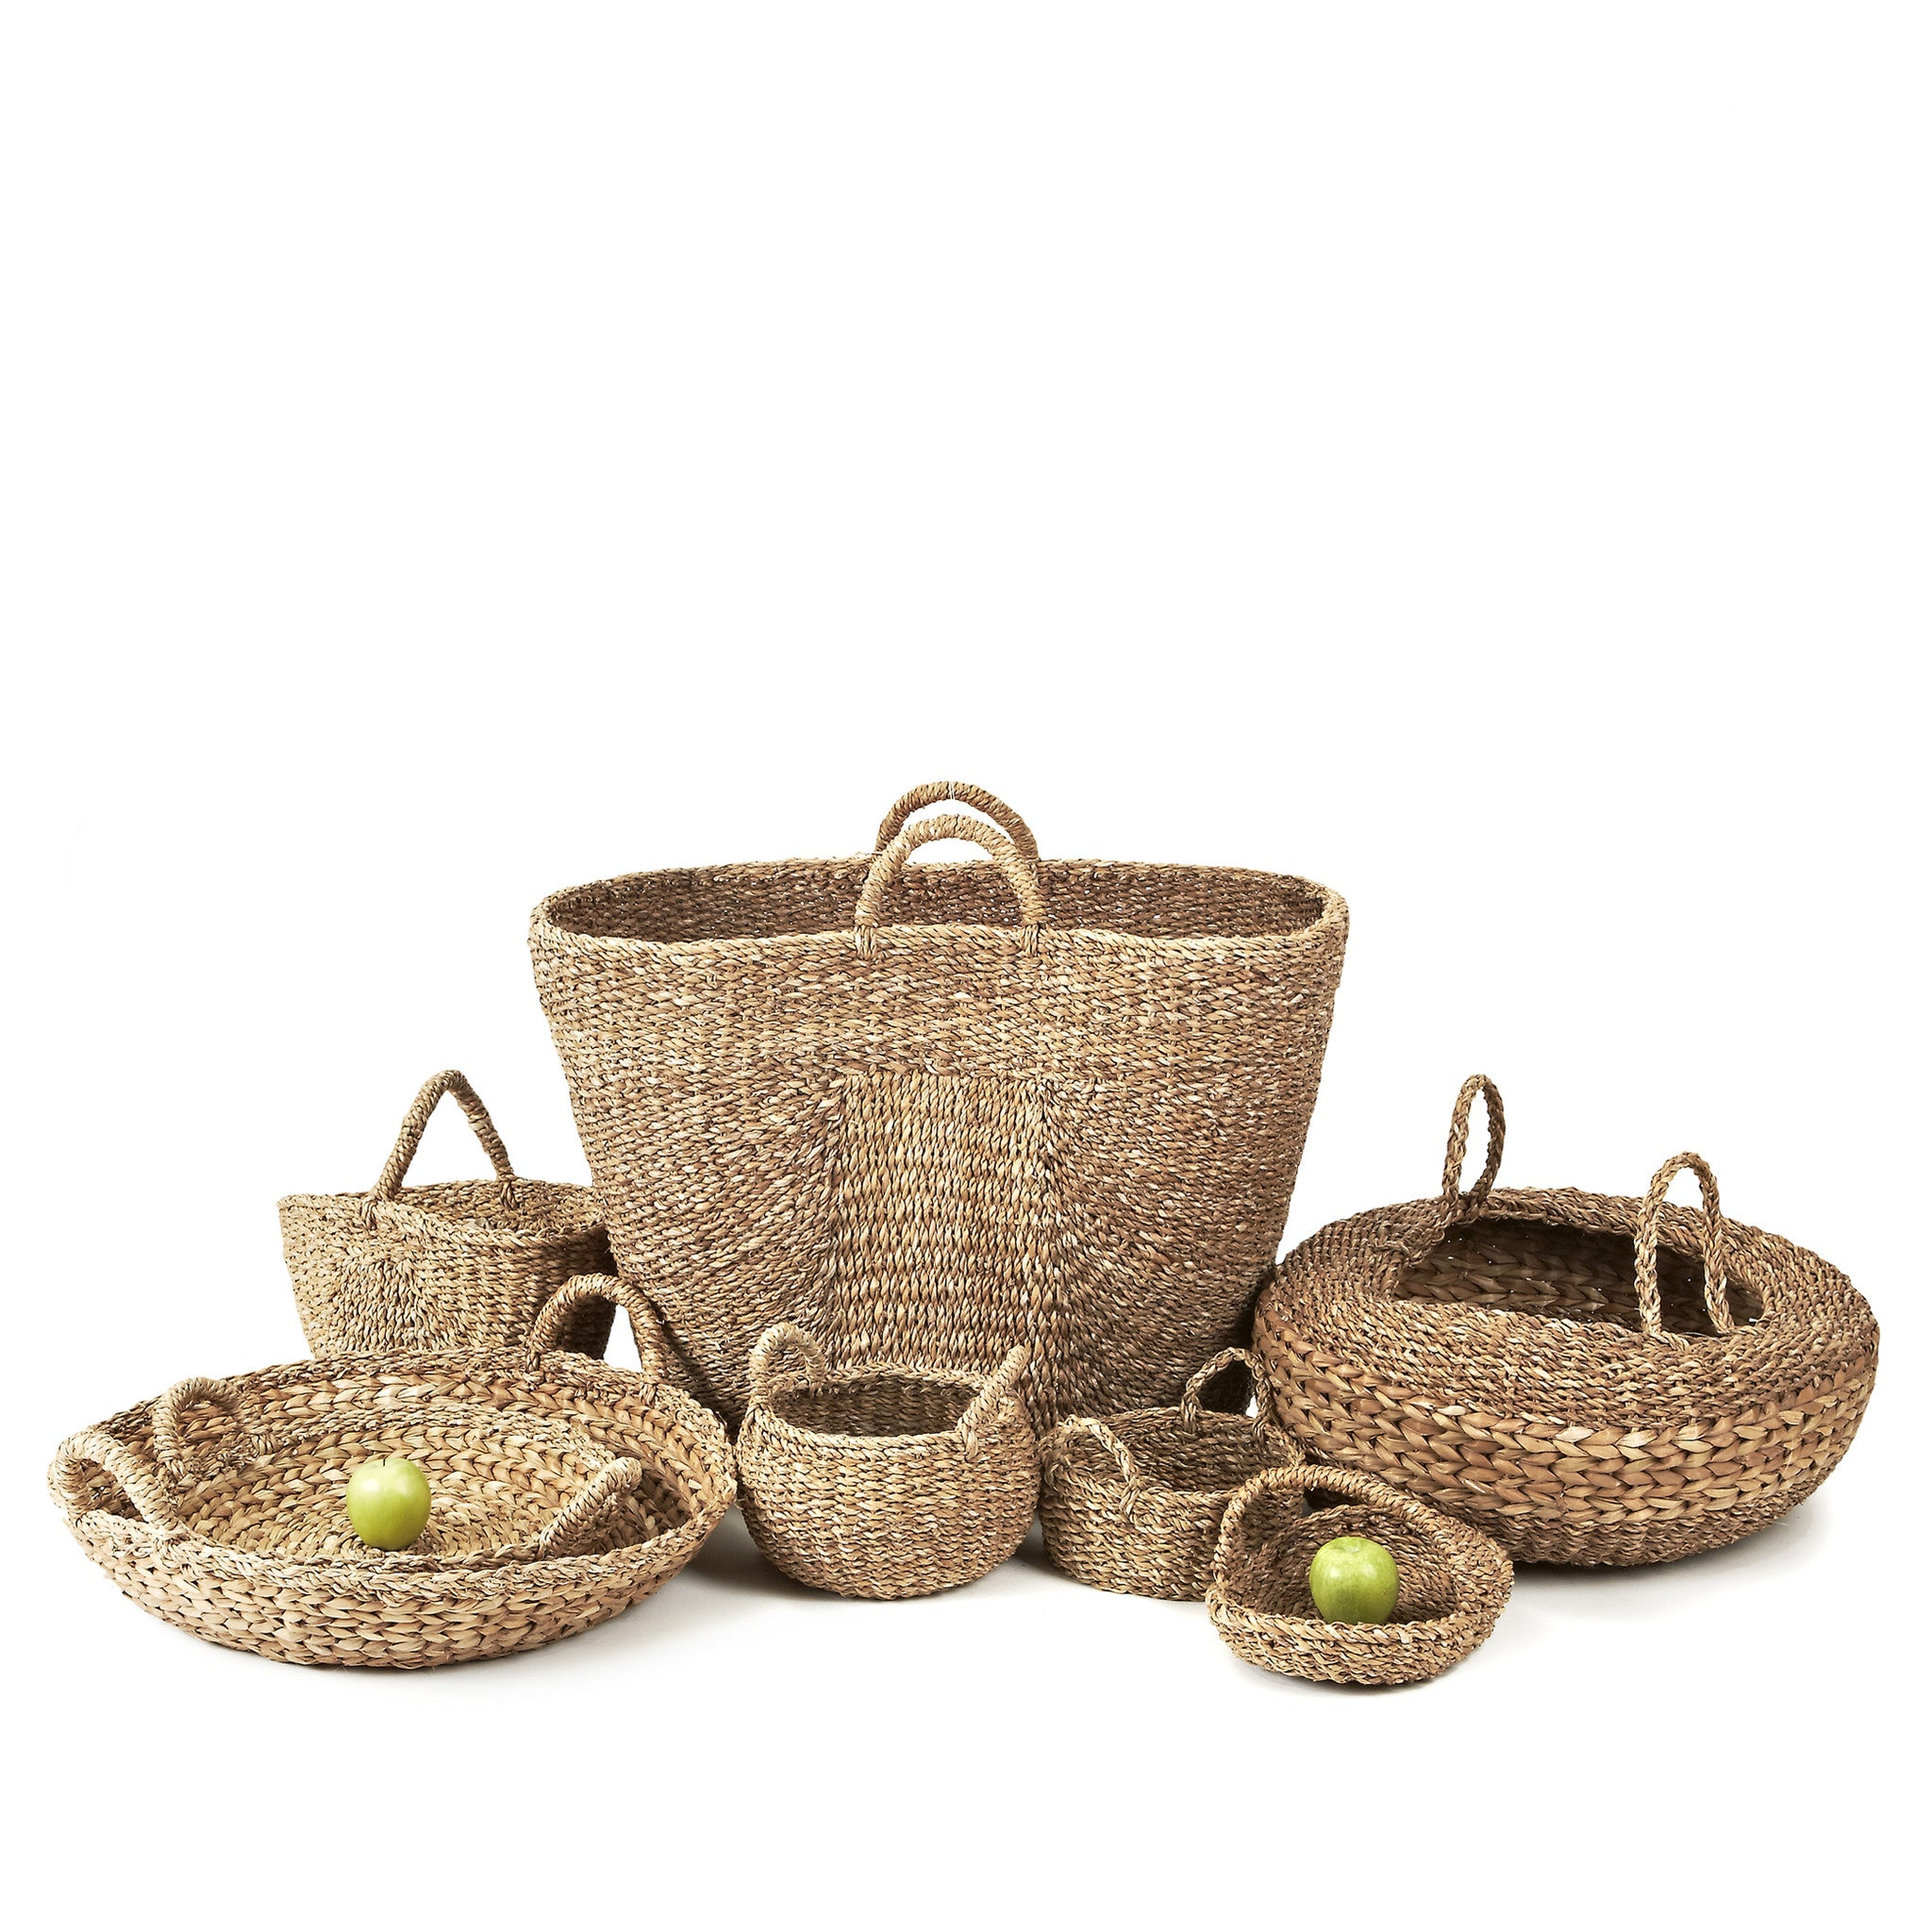 Hogla Fruit Picking Basket